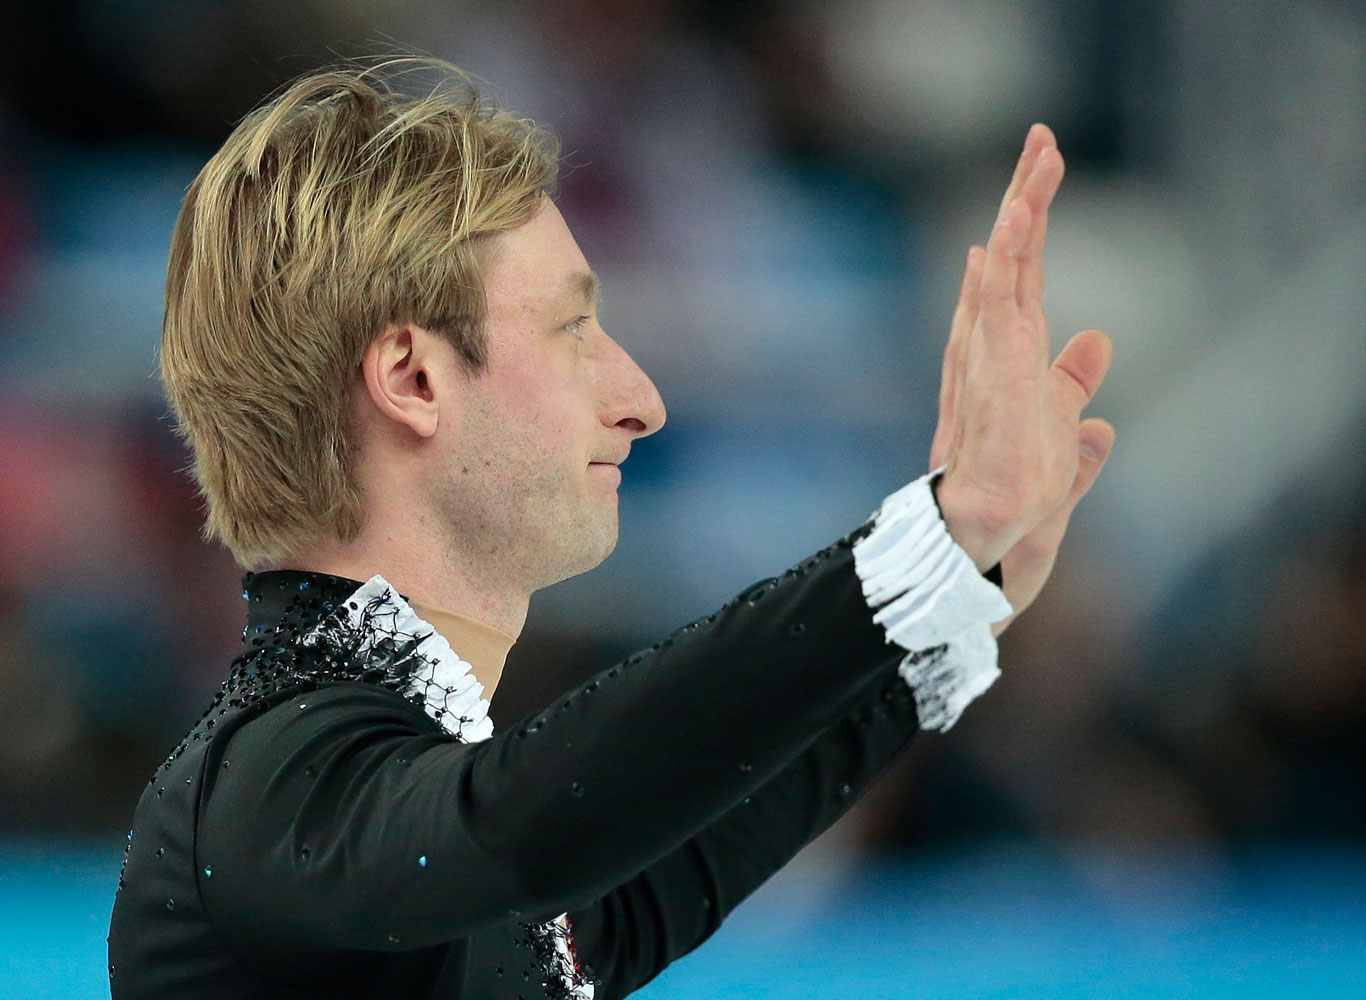 Evgeni Plushenko of Russia waves to spectators after he pulled out of the men's short program figure skating competition due to illness at the Iceberg Skating Palace, Feb. 13, 2014, in Sochi, Russia.